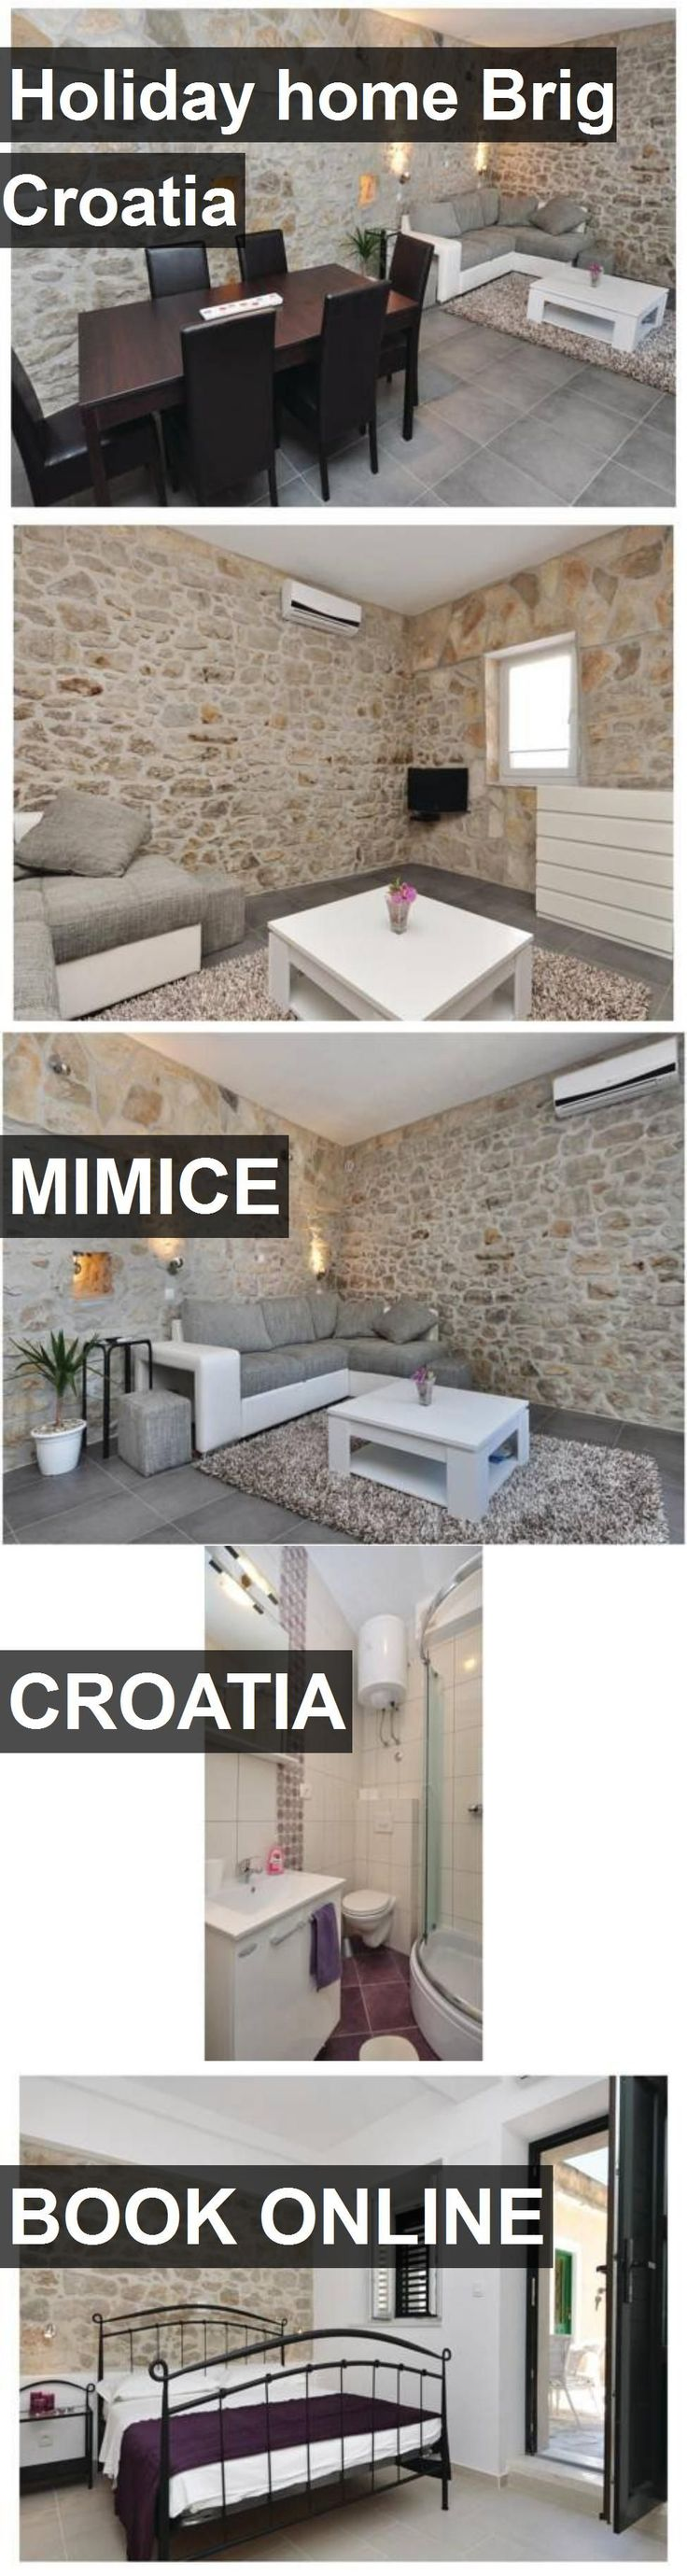 Hotel Holiday home Brig Croatia in Mimice, Croatia. For more information, photos, reviews and best prices please follow the link. #Croatia #Mimice #travel #vacation #hotel